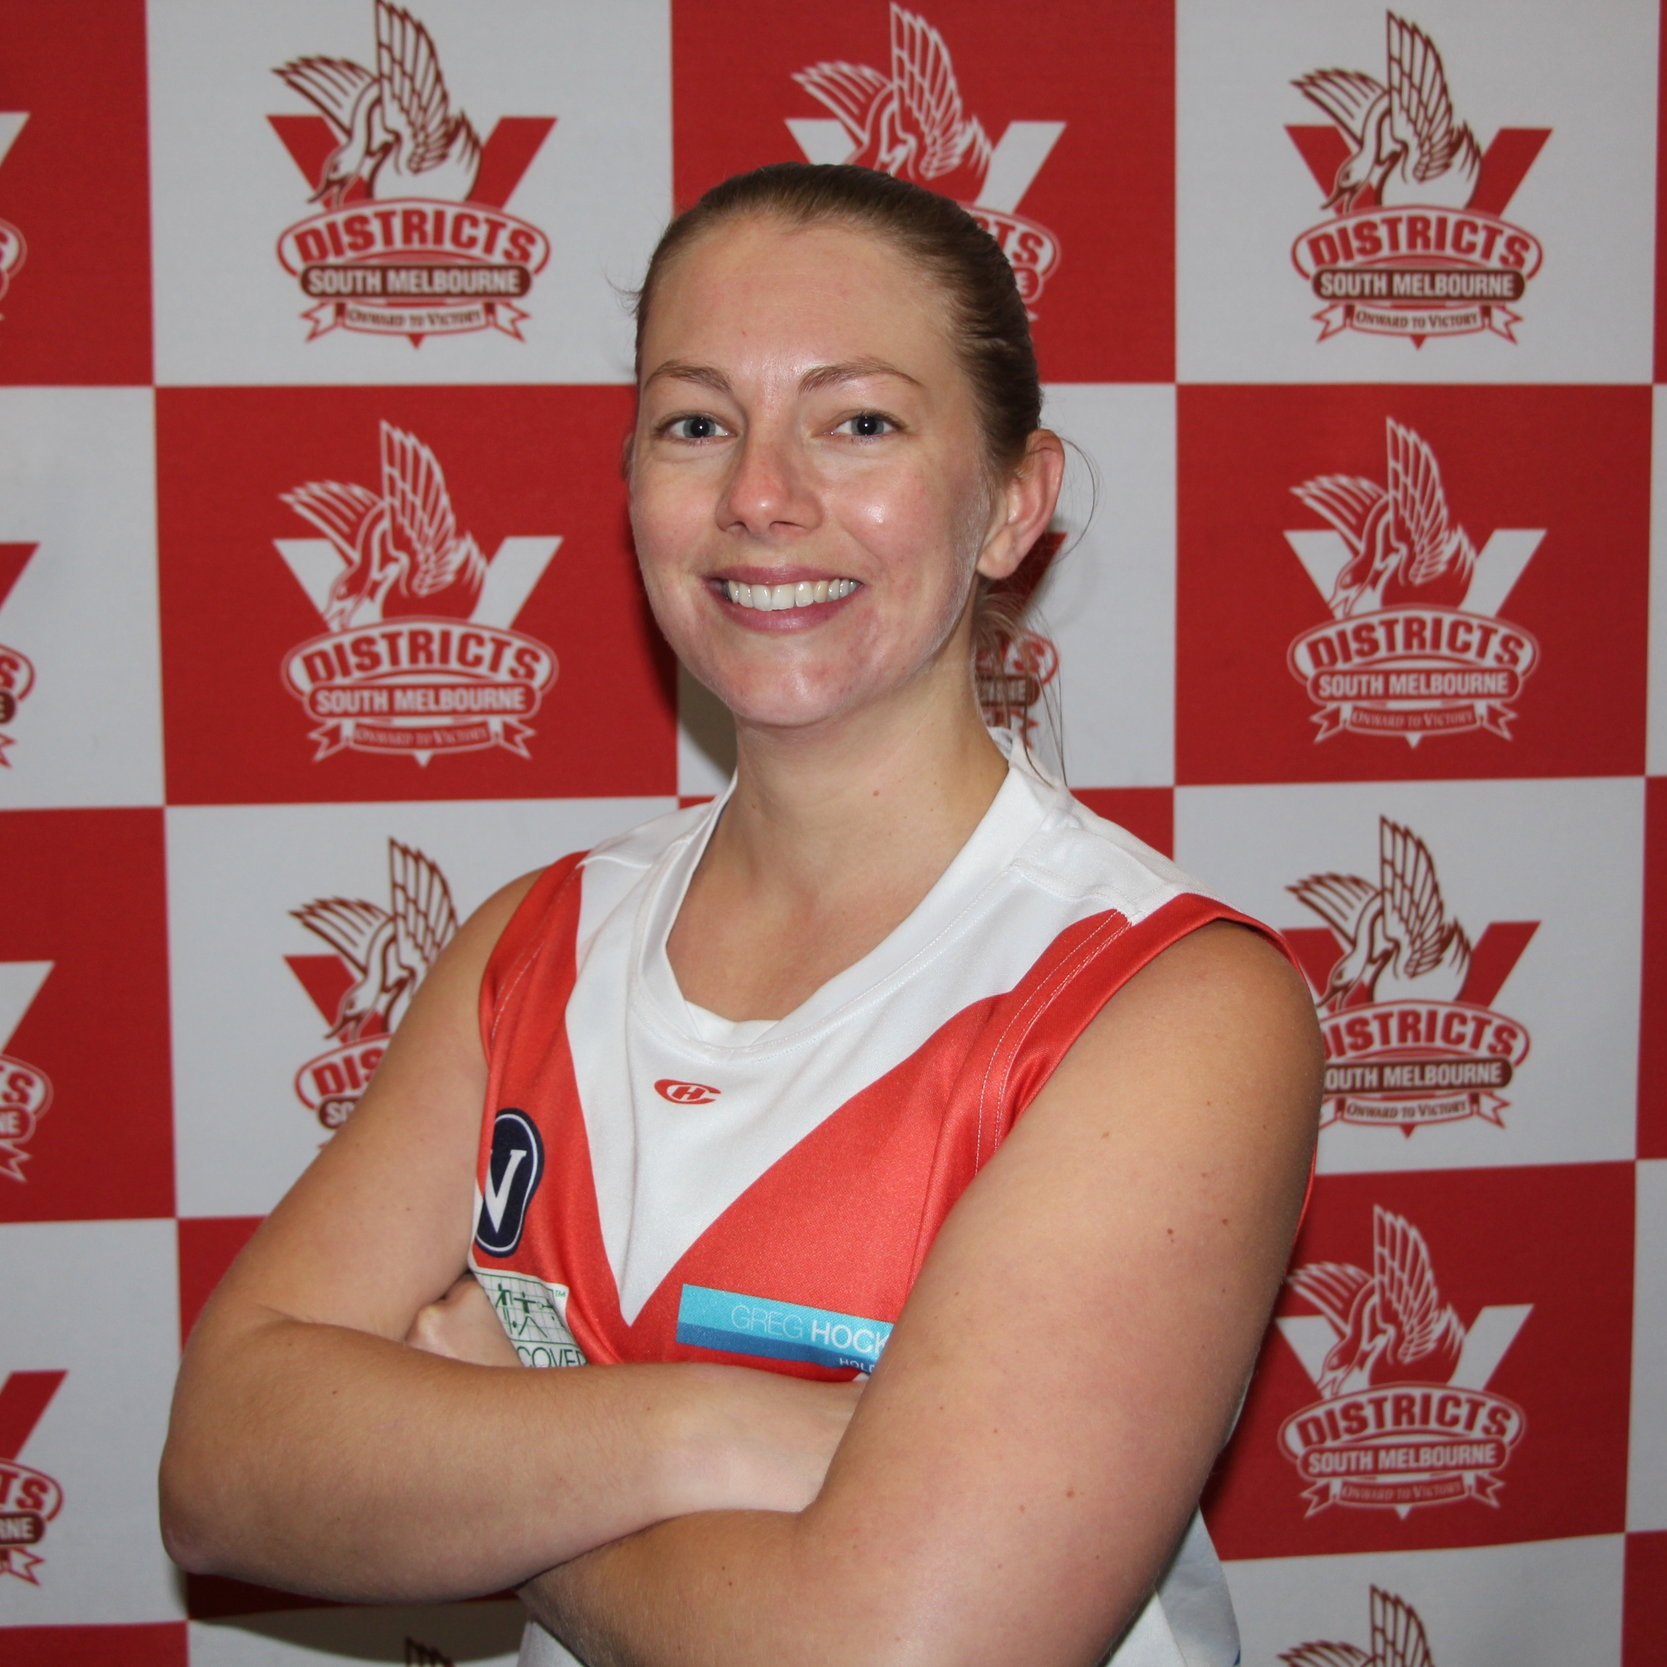 Emma F  Our #84 for the 2019 season is Emma. Emma began her SMDFC career as a fill in for Div 3 in 2018 and loved it so much she has come back to join us full time! Emma is a history teacher but prides herself on coming 6th in cross country against the year 7 girls in her 3rd year of teaching- she is hoping to beat them this year 3 years on. Away from footy you'll find Emma reading Harry Potter, running out of sauna's half naked to watch the Northern Lights or completing a triathlon.